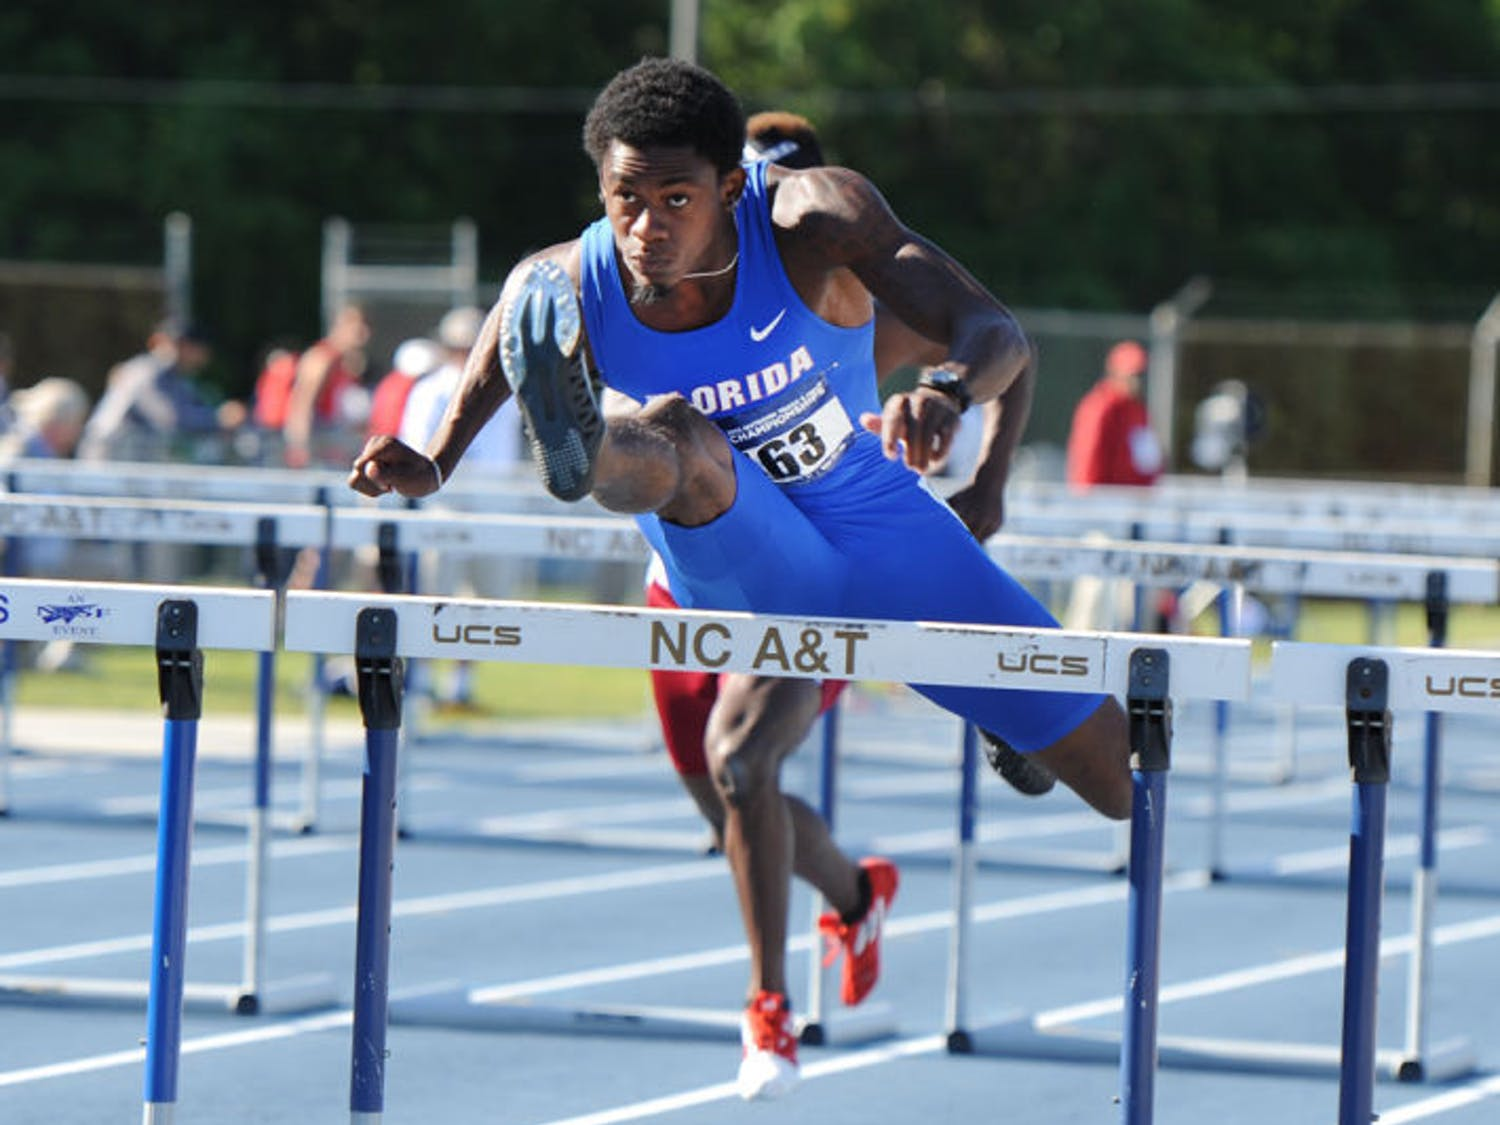 Eddie Lovett leaps over a hurdle during a NCAA East Preliminary Round in Greensboro, N.C., on May 24. Lovett will compete in the 110m hurdles tonight at 8:20.